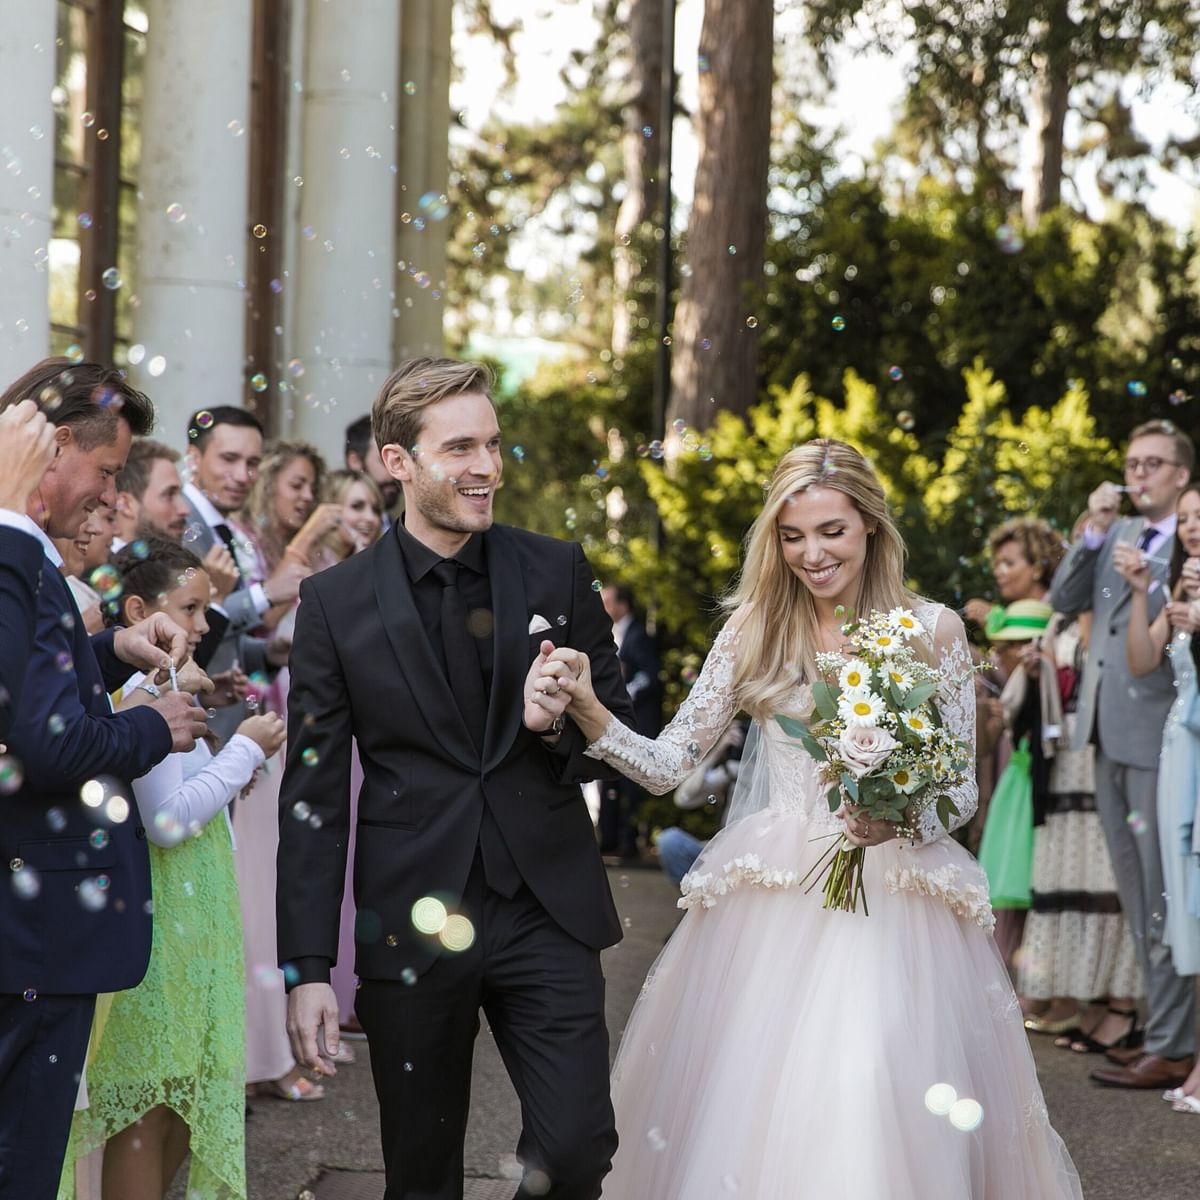 Youtube superstar PewDiePie marries longtime partner Marzia Bisognin